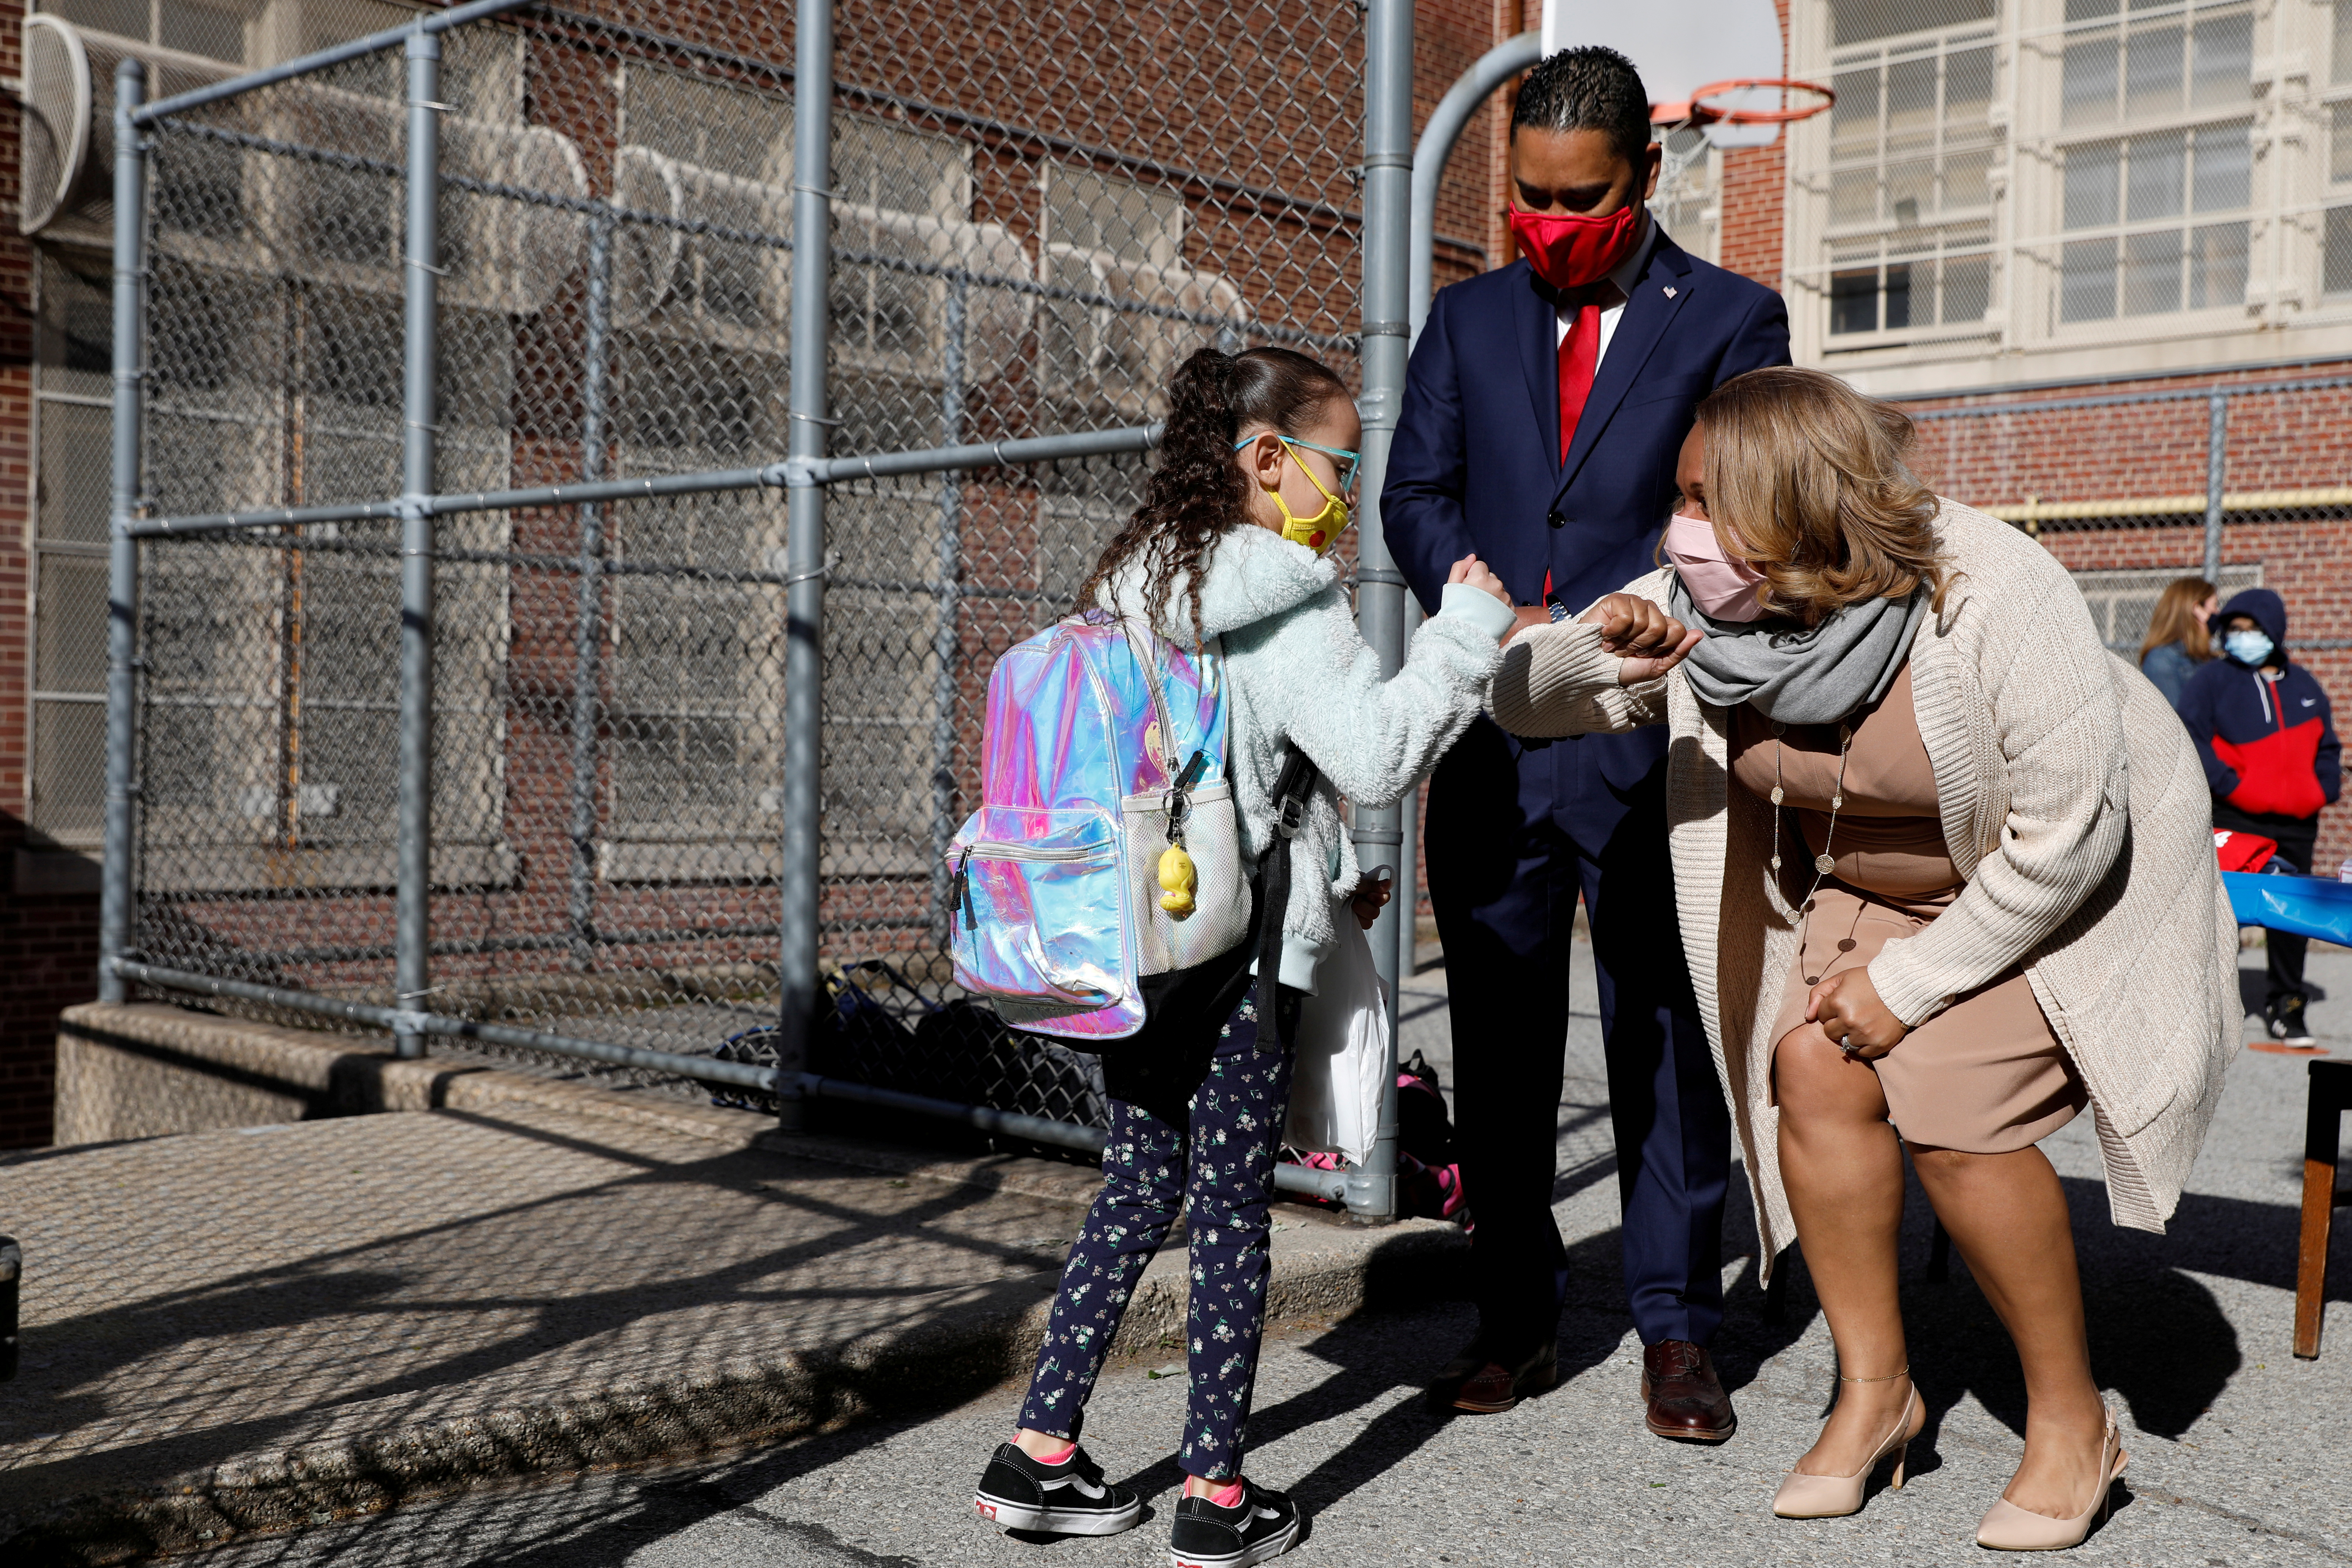 Meisha Porter, Chancellor of the New York City Department of Education, greets a P.S. 064 Robert Simon student as children return to school during the outbreak of COVID-19 in Manhattan, New York City, New York, U.S., April 26, 2021. REUTERS/Andrew Kelly/File Photo